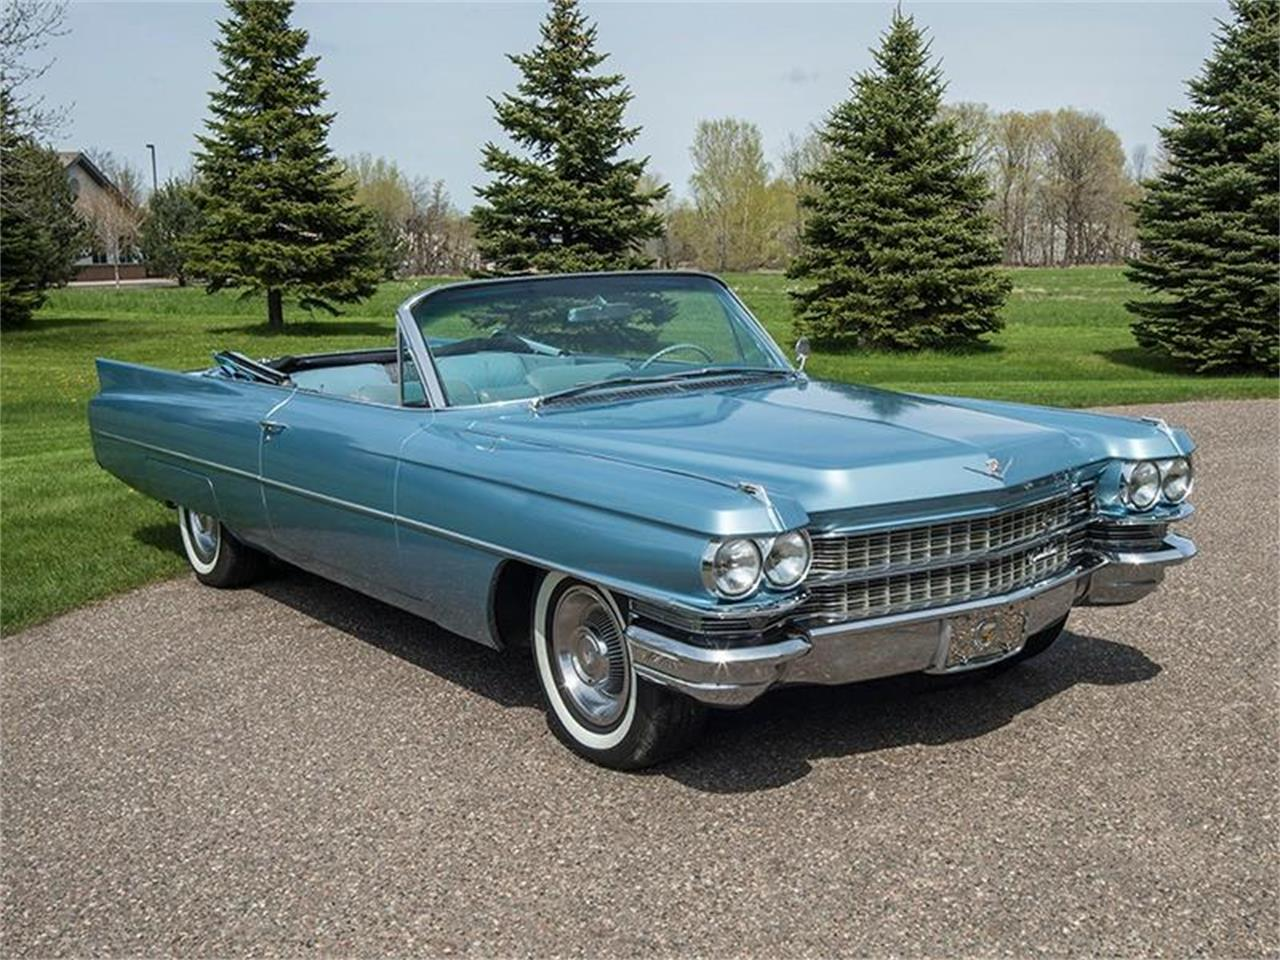 Large Picture of Classic 1963 Cadillac DeVille - $29,950.00 - L0V6